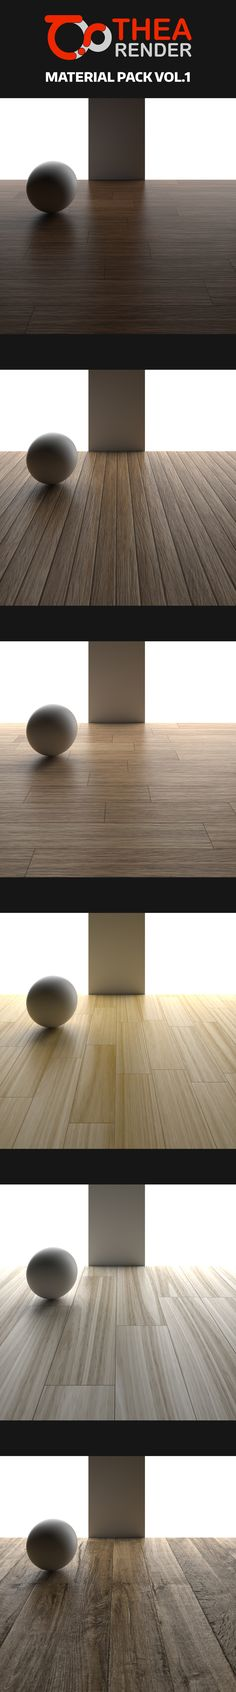 Todays freebie is a free Thea Render Material Pack Vol.1 created by Anthony Boyd. These theamaterials were created using seamless wood textures. All wood materials come with diffuse, reflection, and bump maps. Each material comes in mat.pack so all the necessary files are already included. Free for both personal and commercial use.